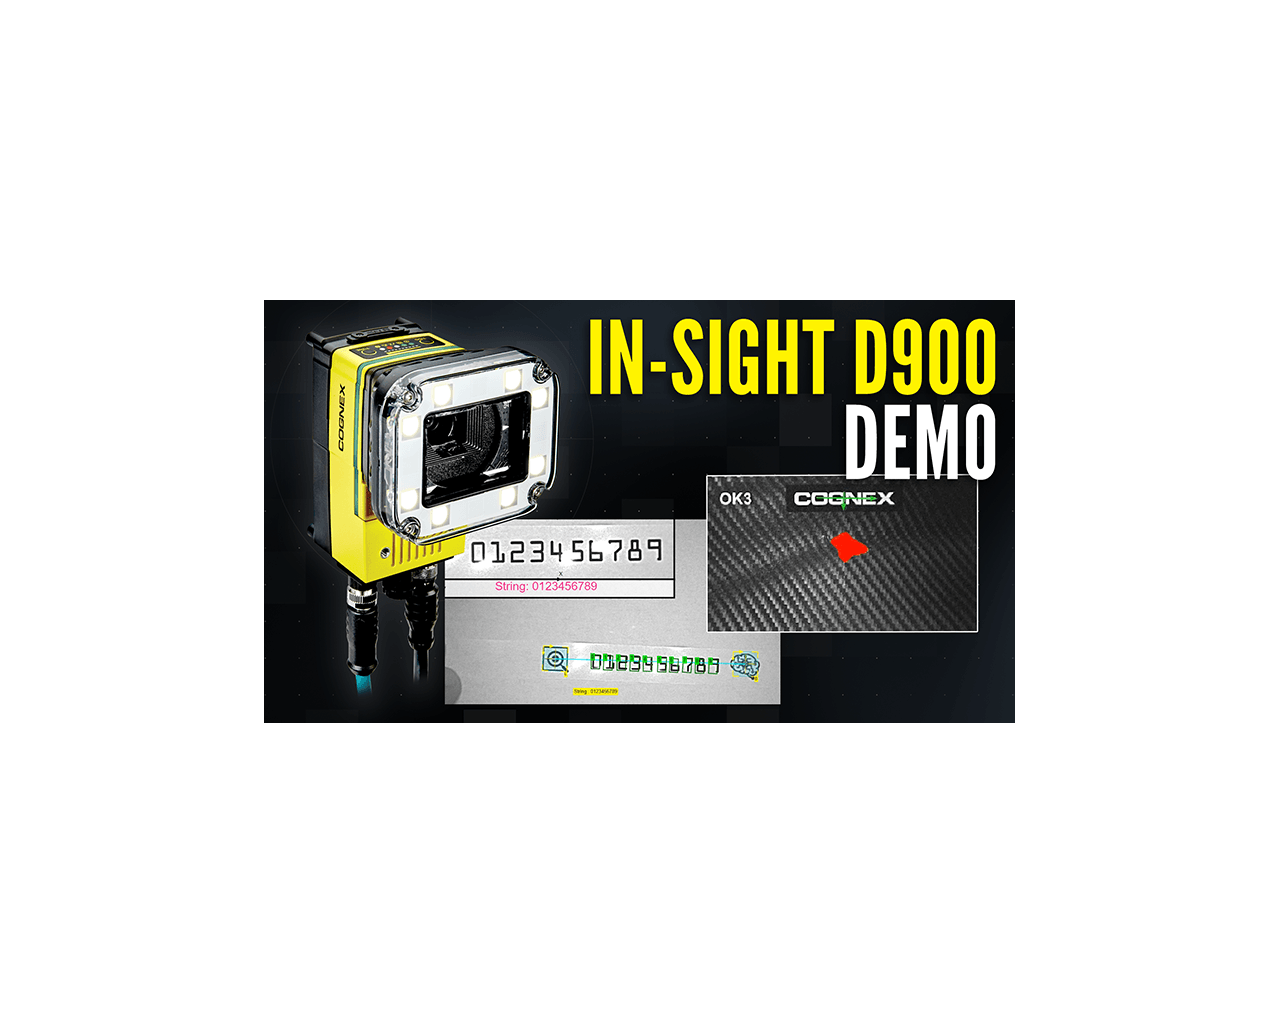 In-Sight D900 Product Demonstration